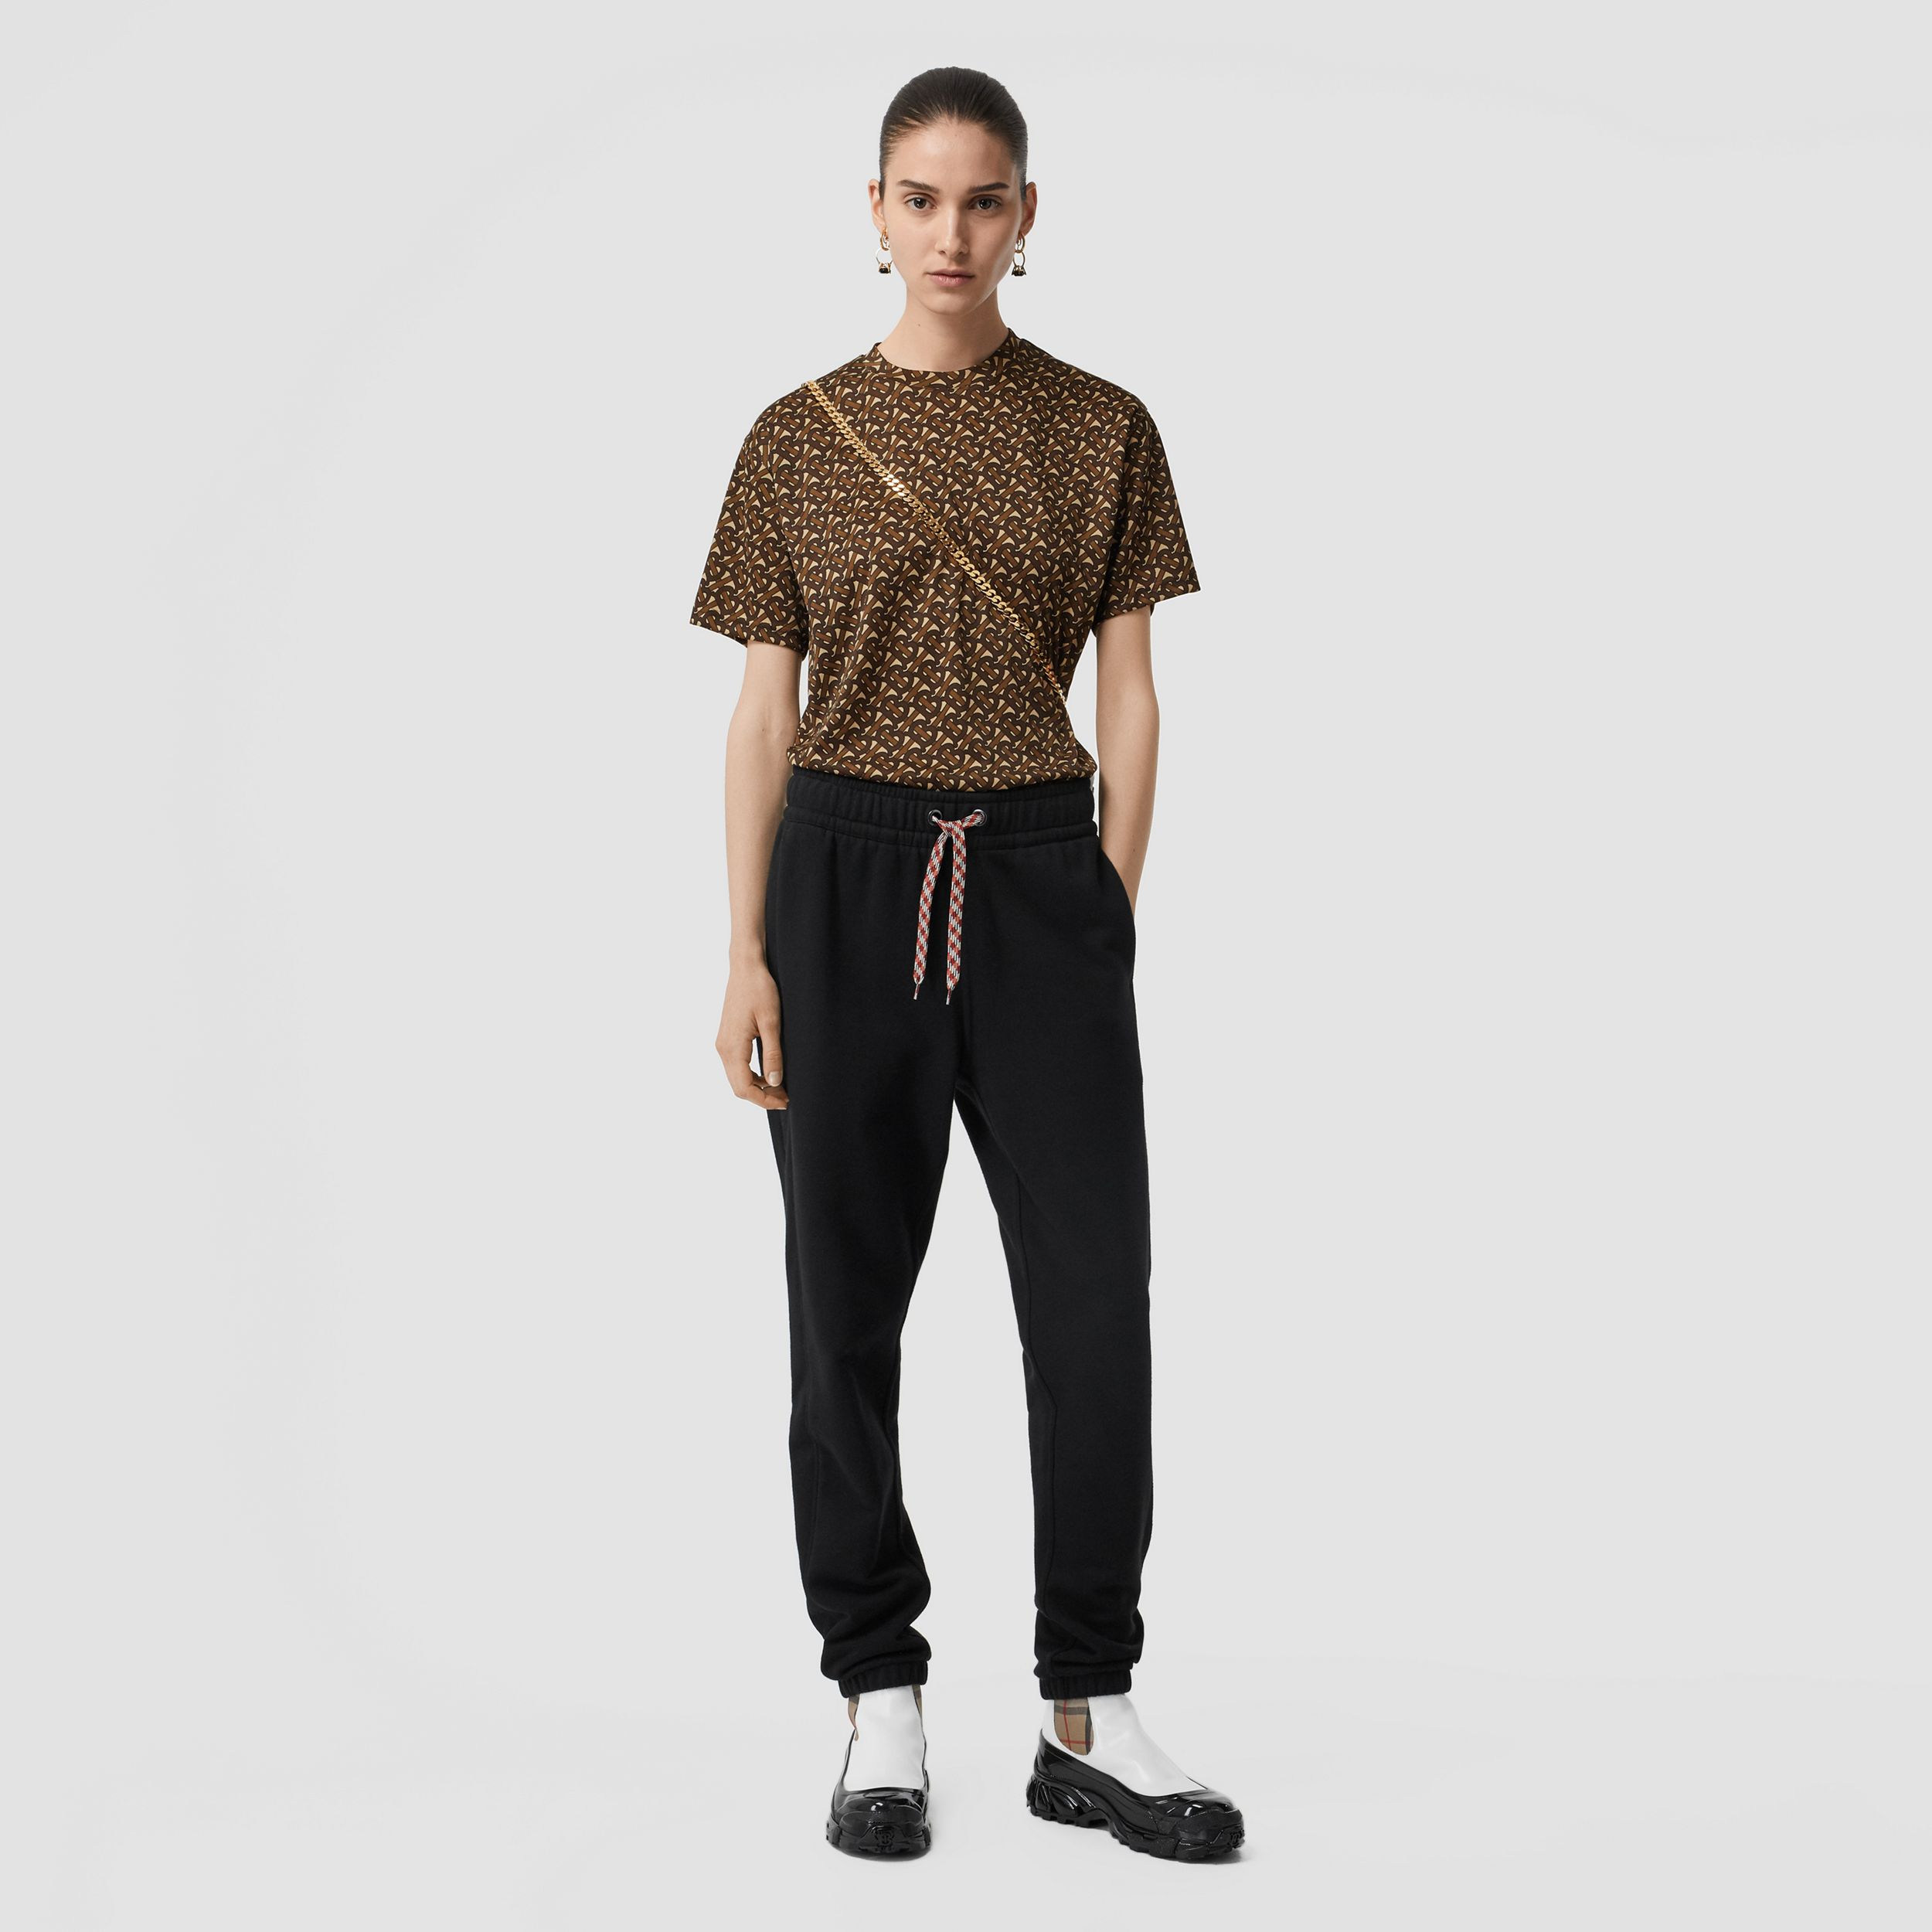 Monogram Print Jersey Oversized T-shirt in Bridle Brown - Women | Burberry - 1